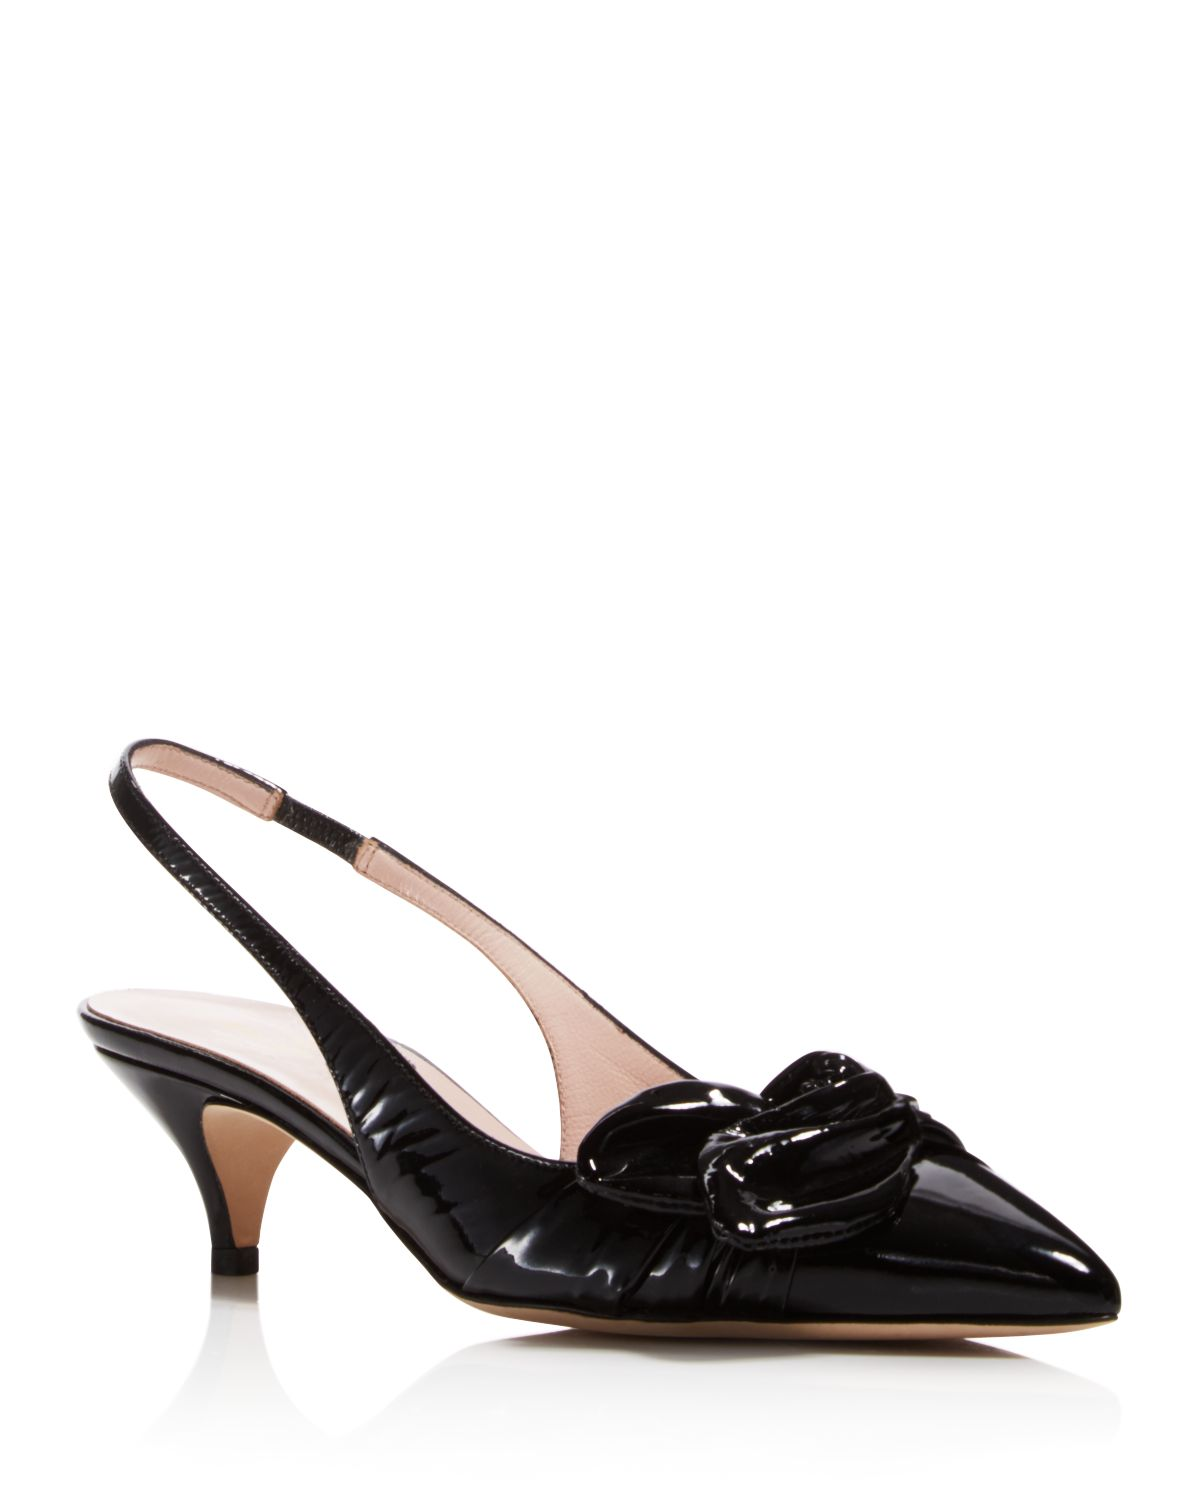 Kate Spade New York Patent Leather Bow-Accented Pumps